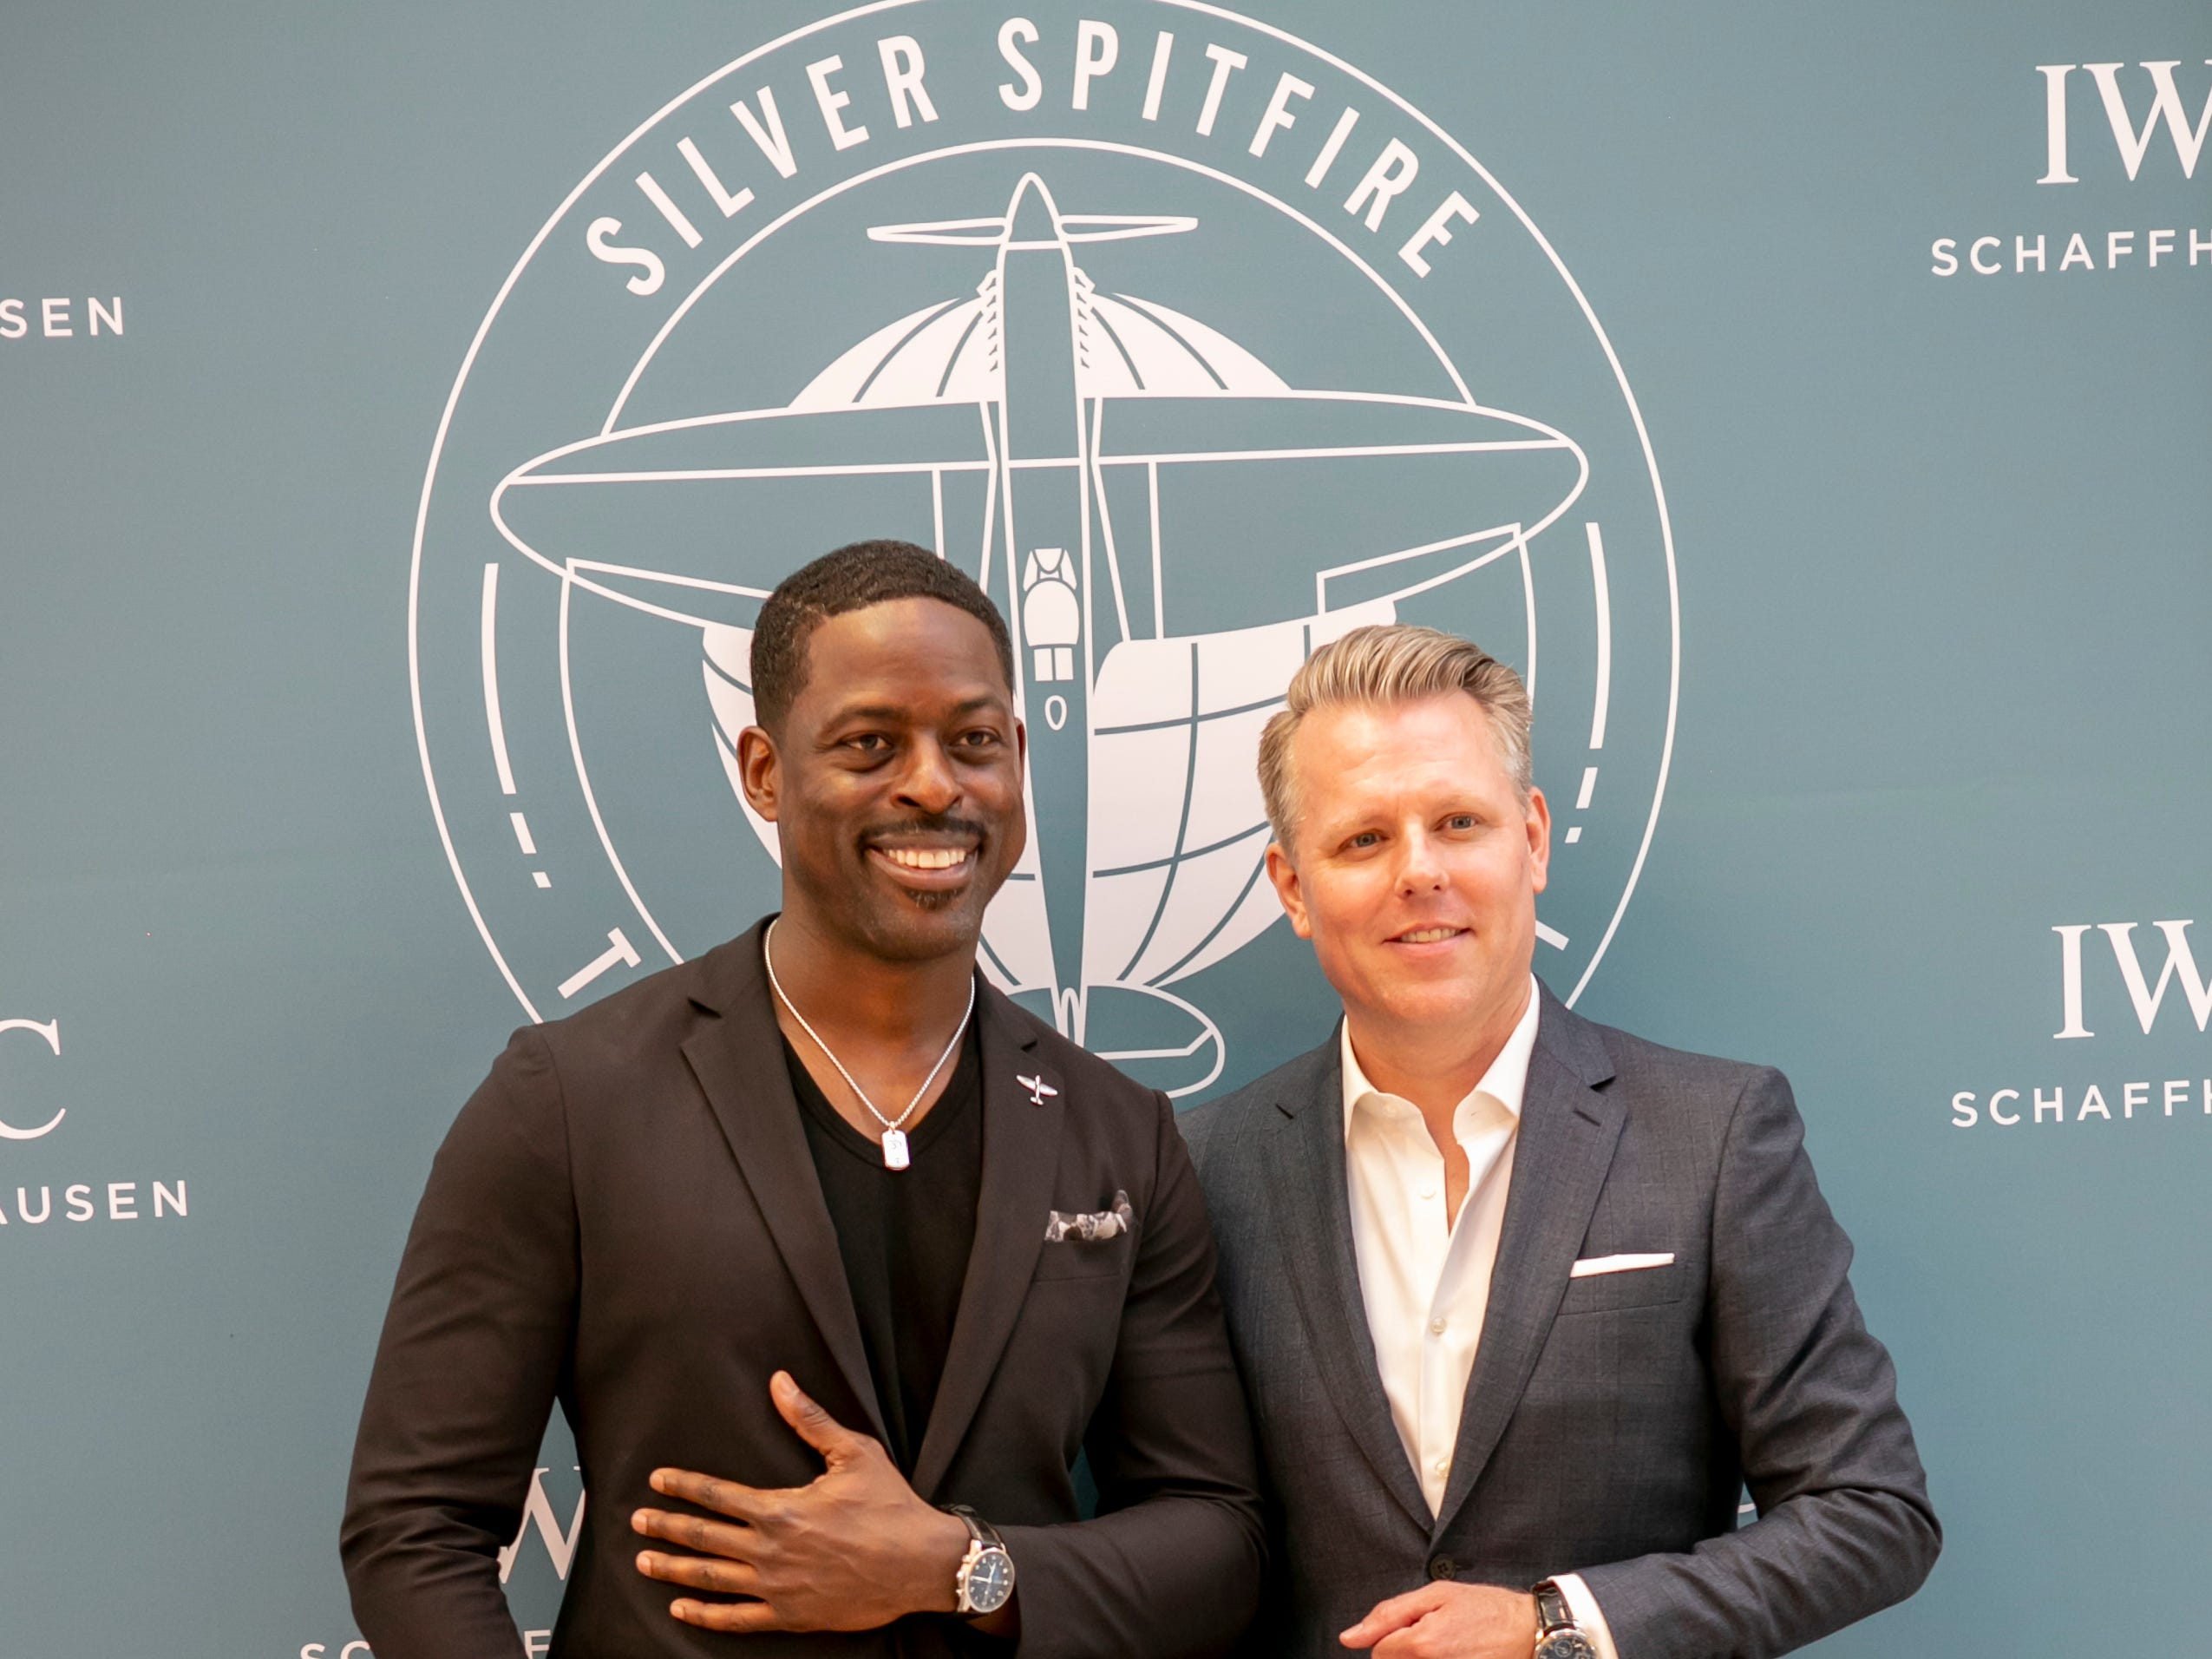 """This Is Us"" actor Sterling K. Brown and IWC Schaffhausen's North American president Darin Rabb during a launch party for the Spitfire collection at the Scottsdale Fashion Square, Thursday, April 25, 2019."